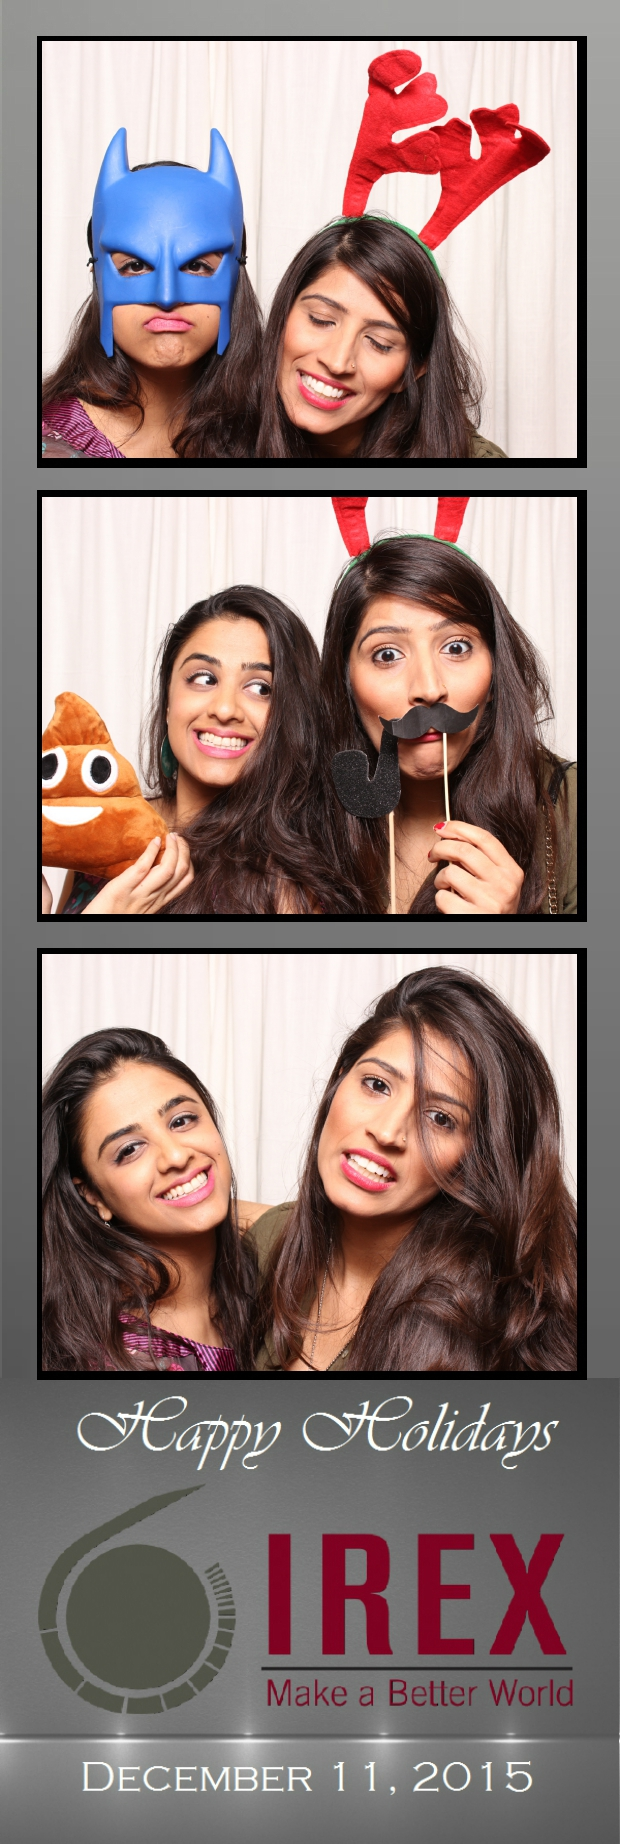 Guest House Events Photo Booth Strips IREX (76).jpg